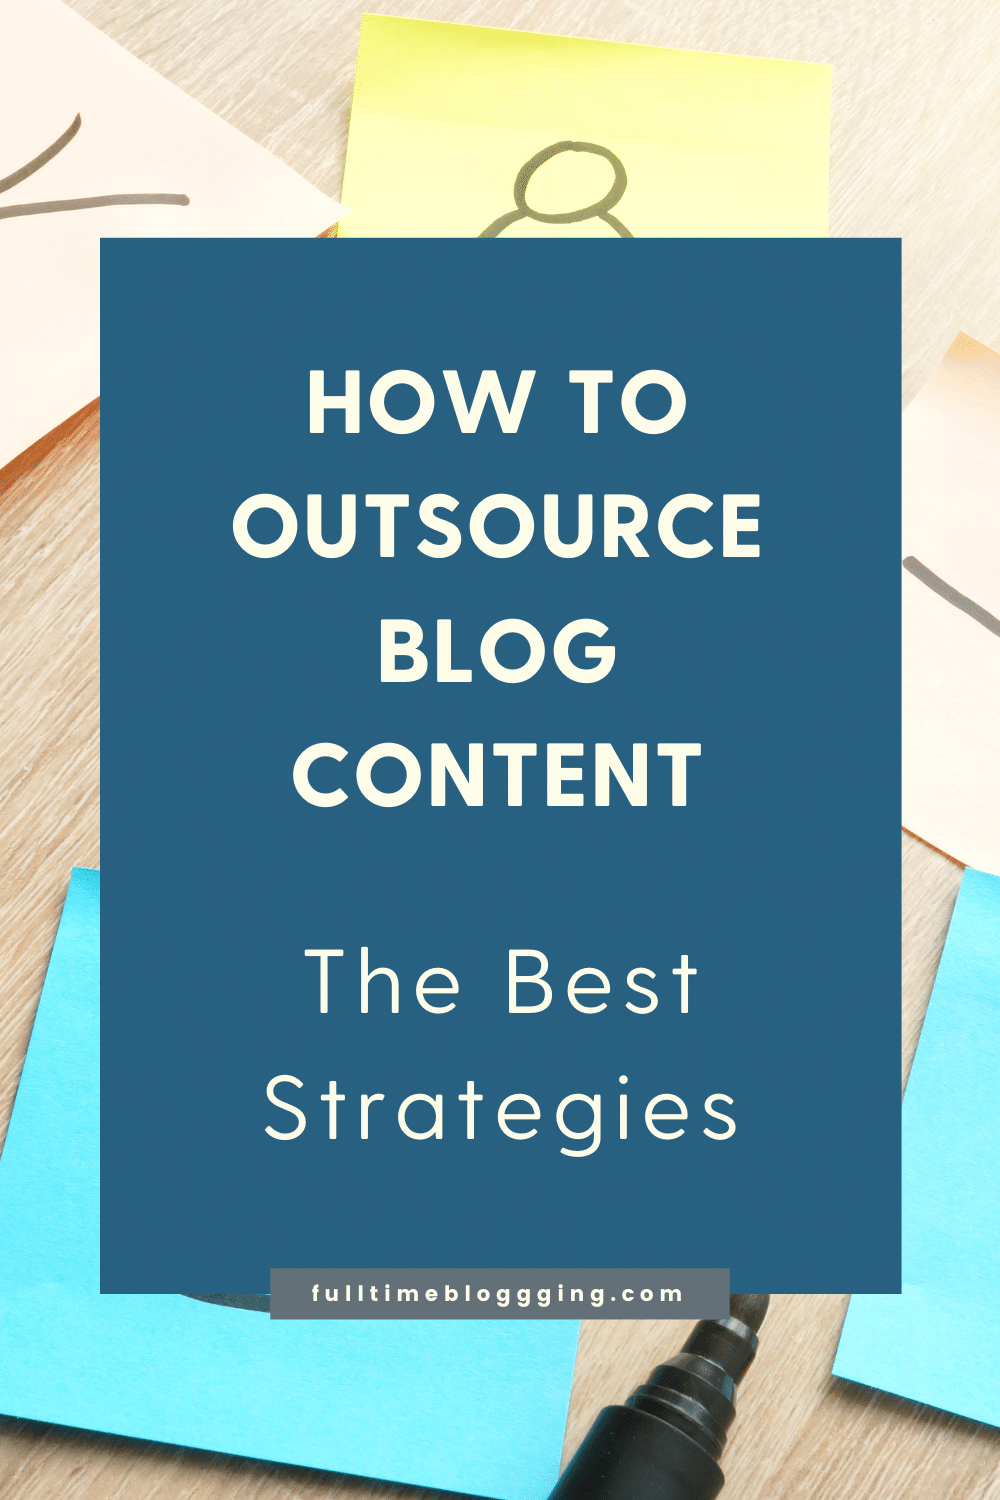 How To Outsource Blog Content